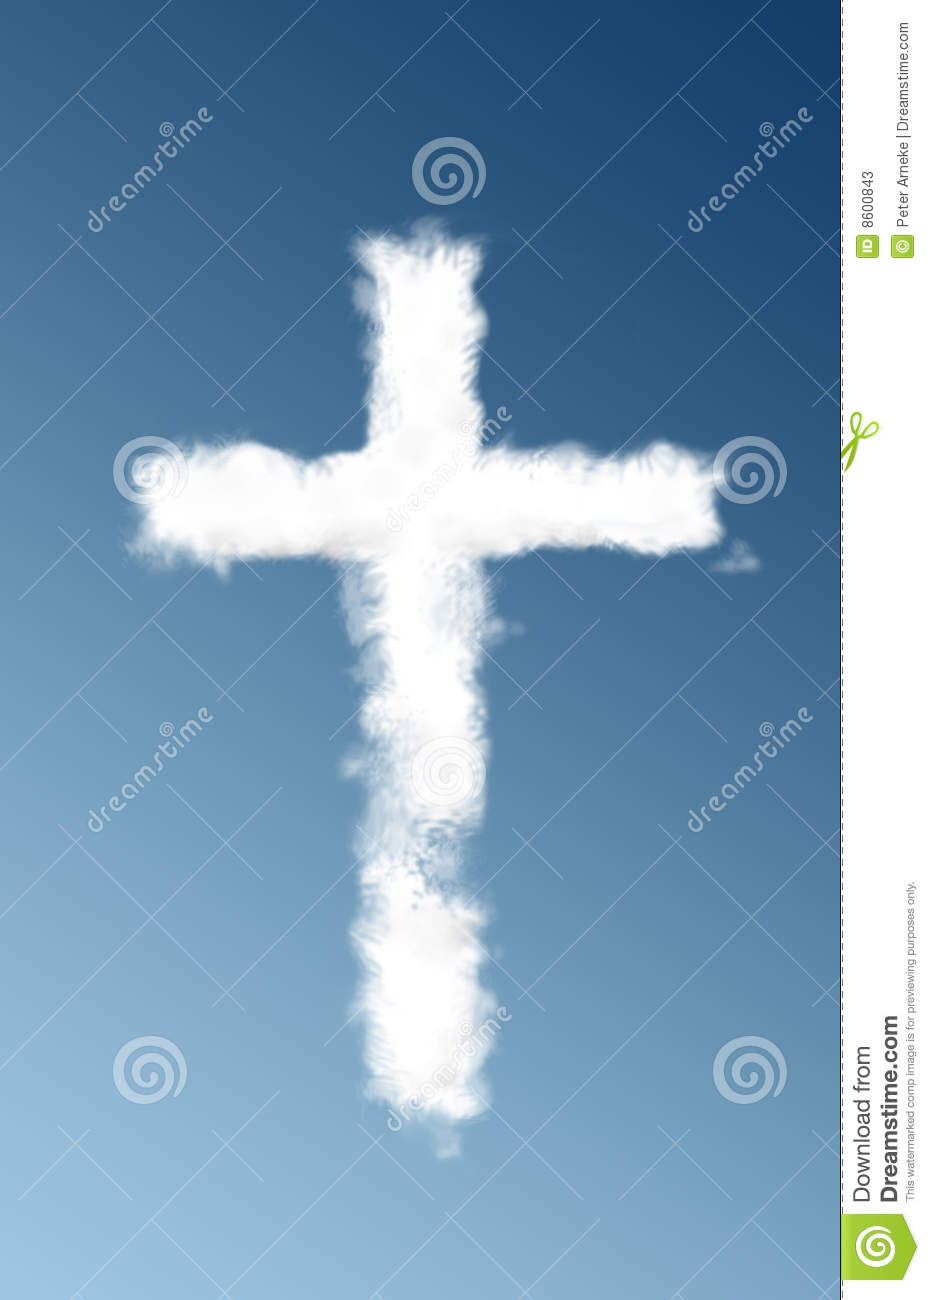 A Cross cloud